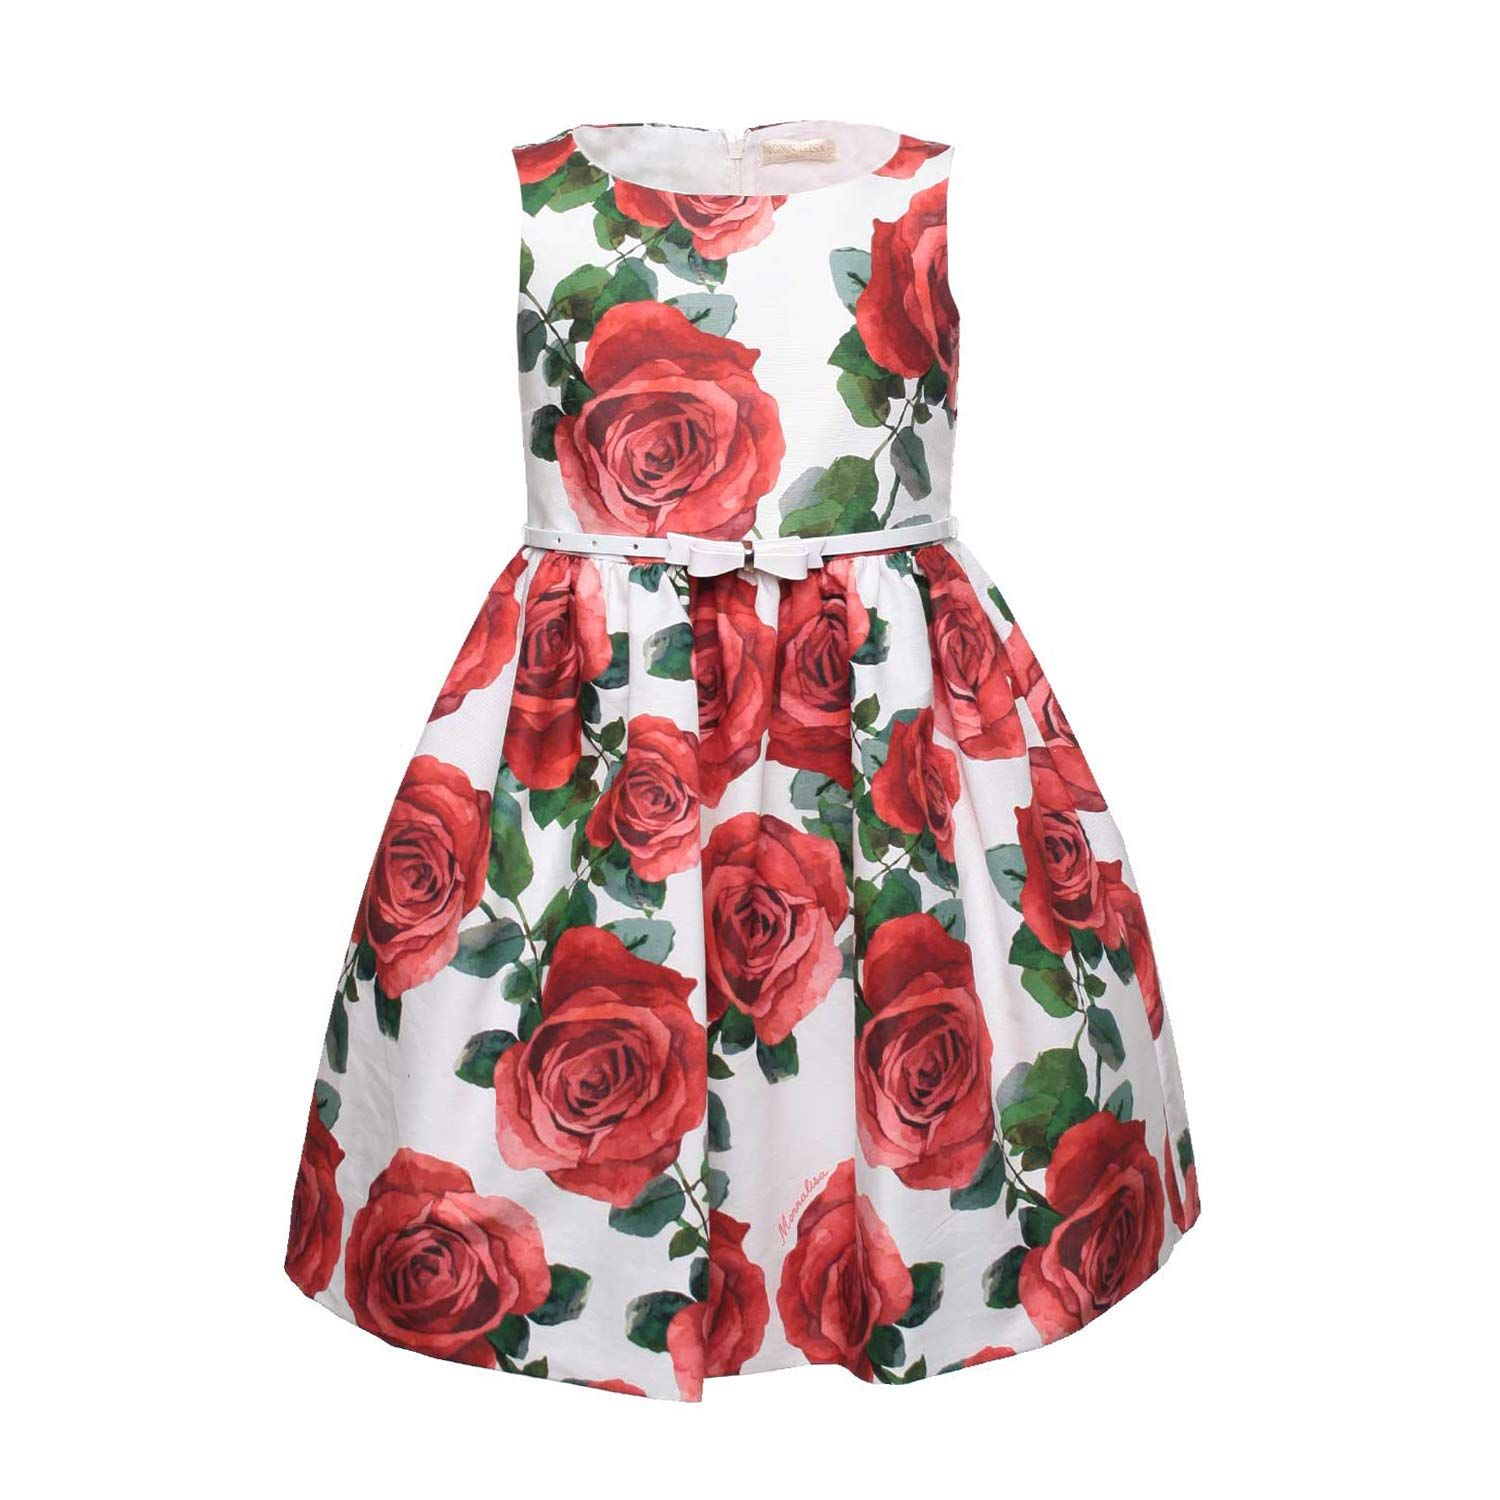 low priced e7ed3 abb75 Monnalisa - Abito Bambina Con Rose - annameglio.com shop ...